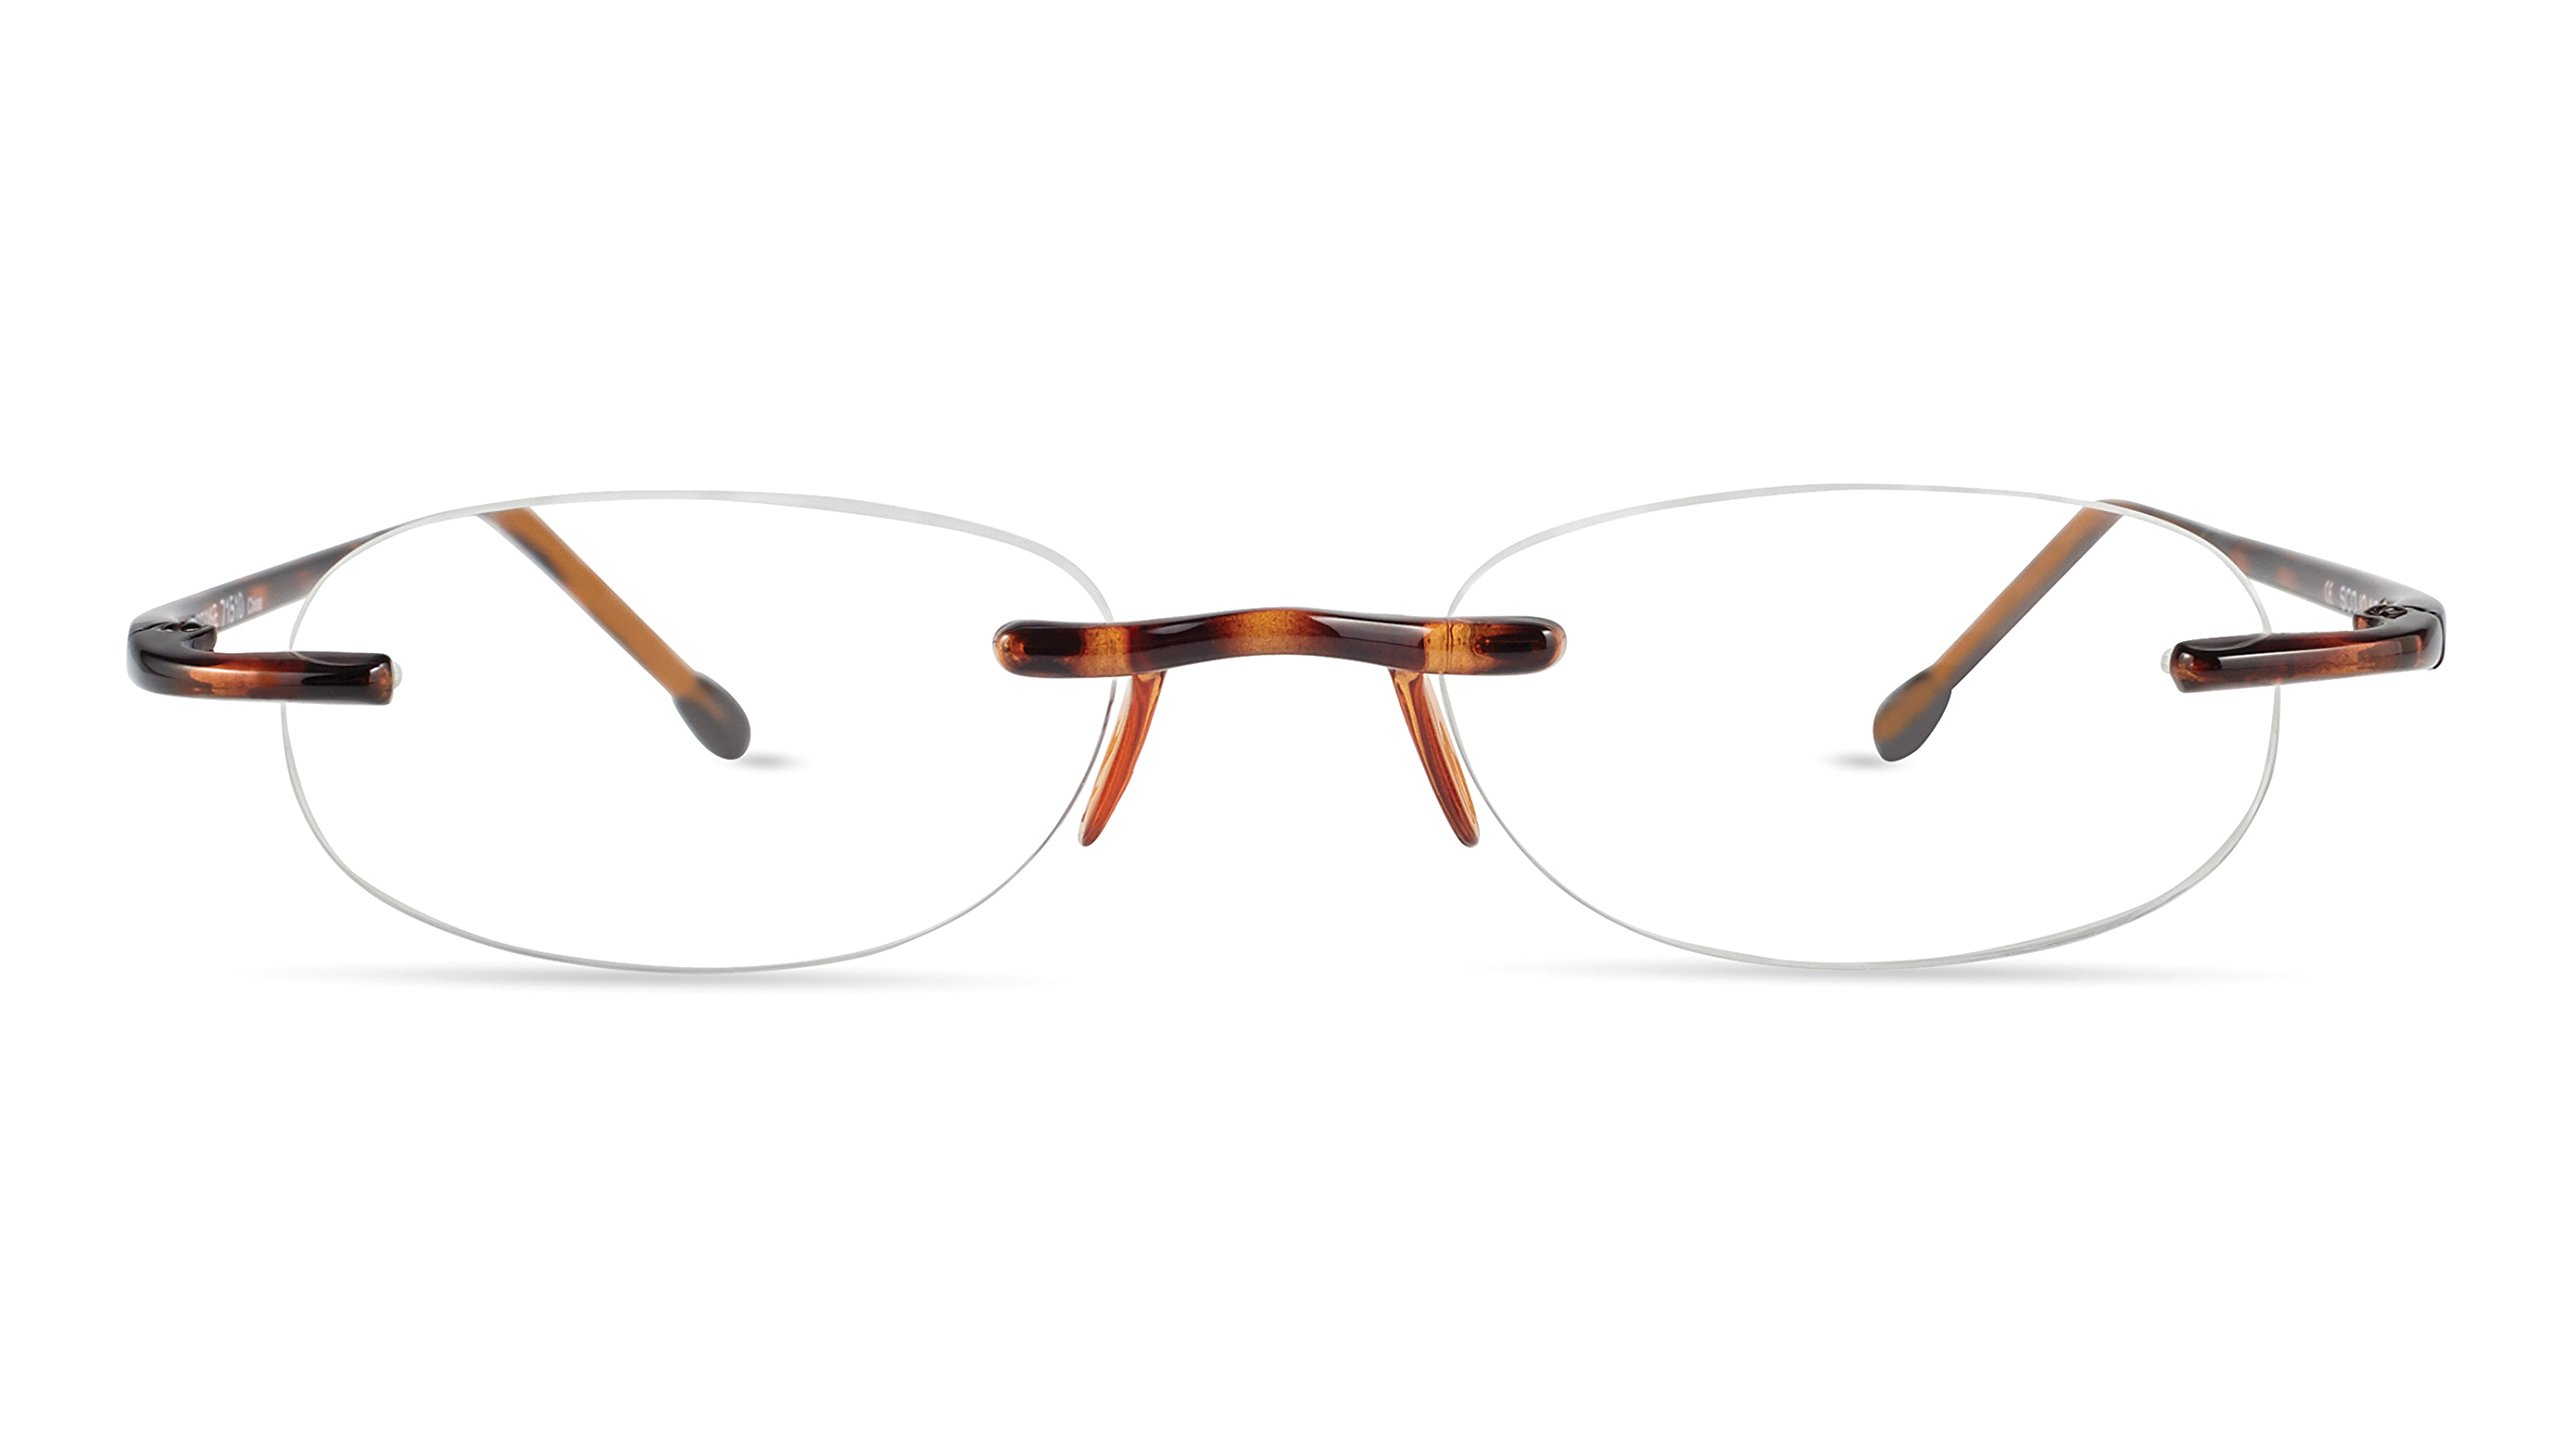 Gels - Lightweight Rimless Fashion Readers - The Original Reading Glasses for Men and Women - Tortoise (+1.50 Magnification Power) by Scojo New York (Image #3)